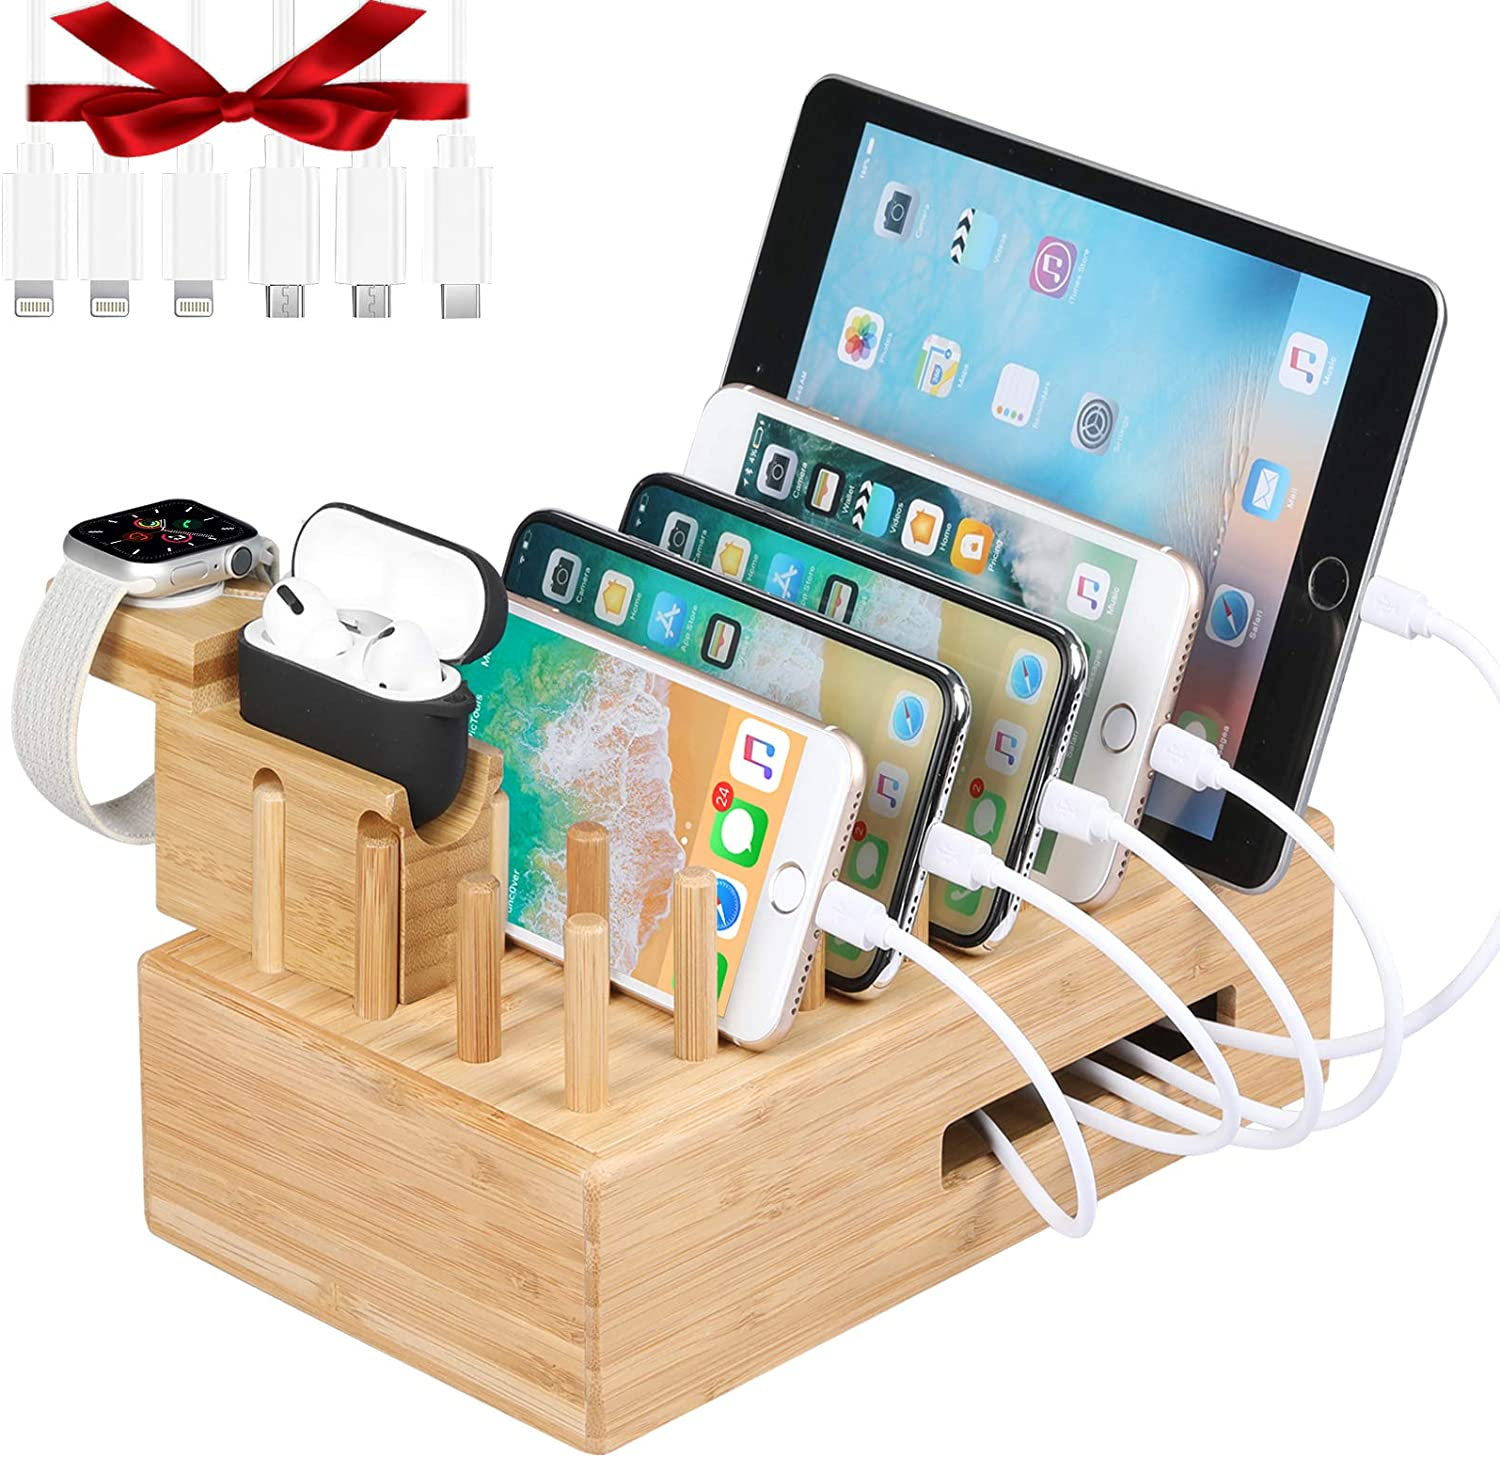 Darfoo Charging Station for Multiple Devices - Bamboo Charging Dock with 7 USB Ports, 6 Mixed Cables & Watch-Airpod Pro Stand for Cell Phones, Tablets, iWatch, Airpods Pro